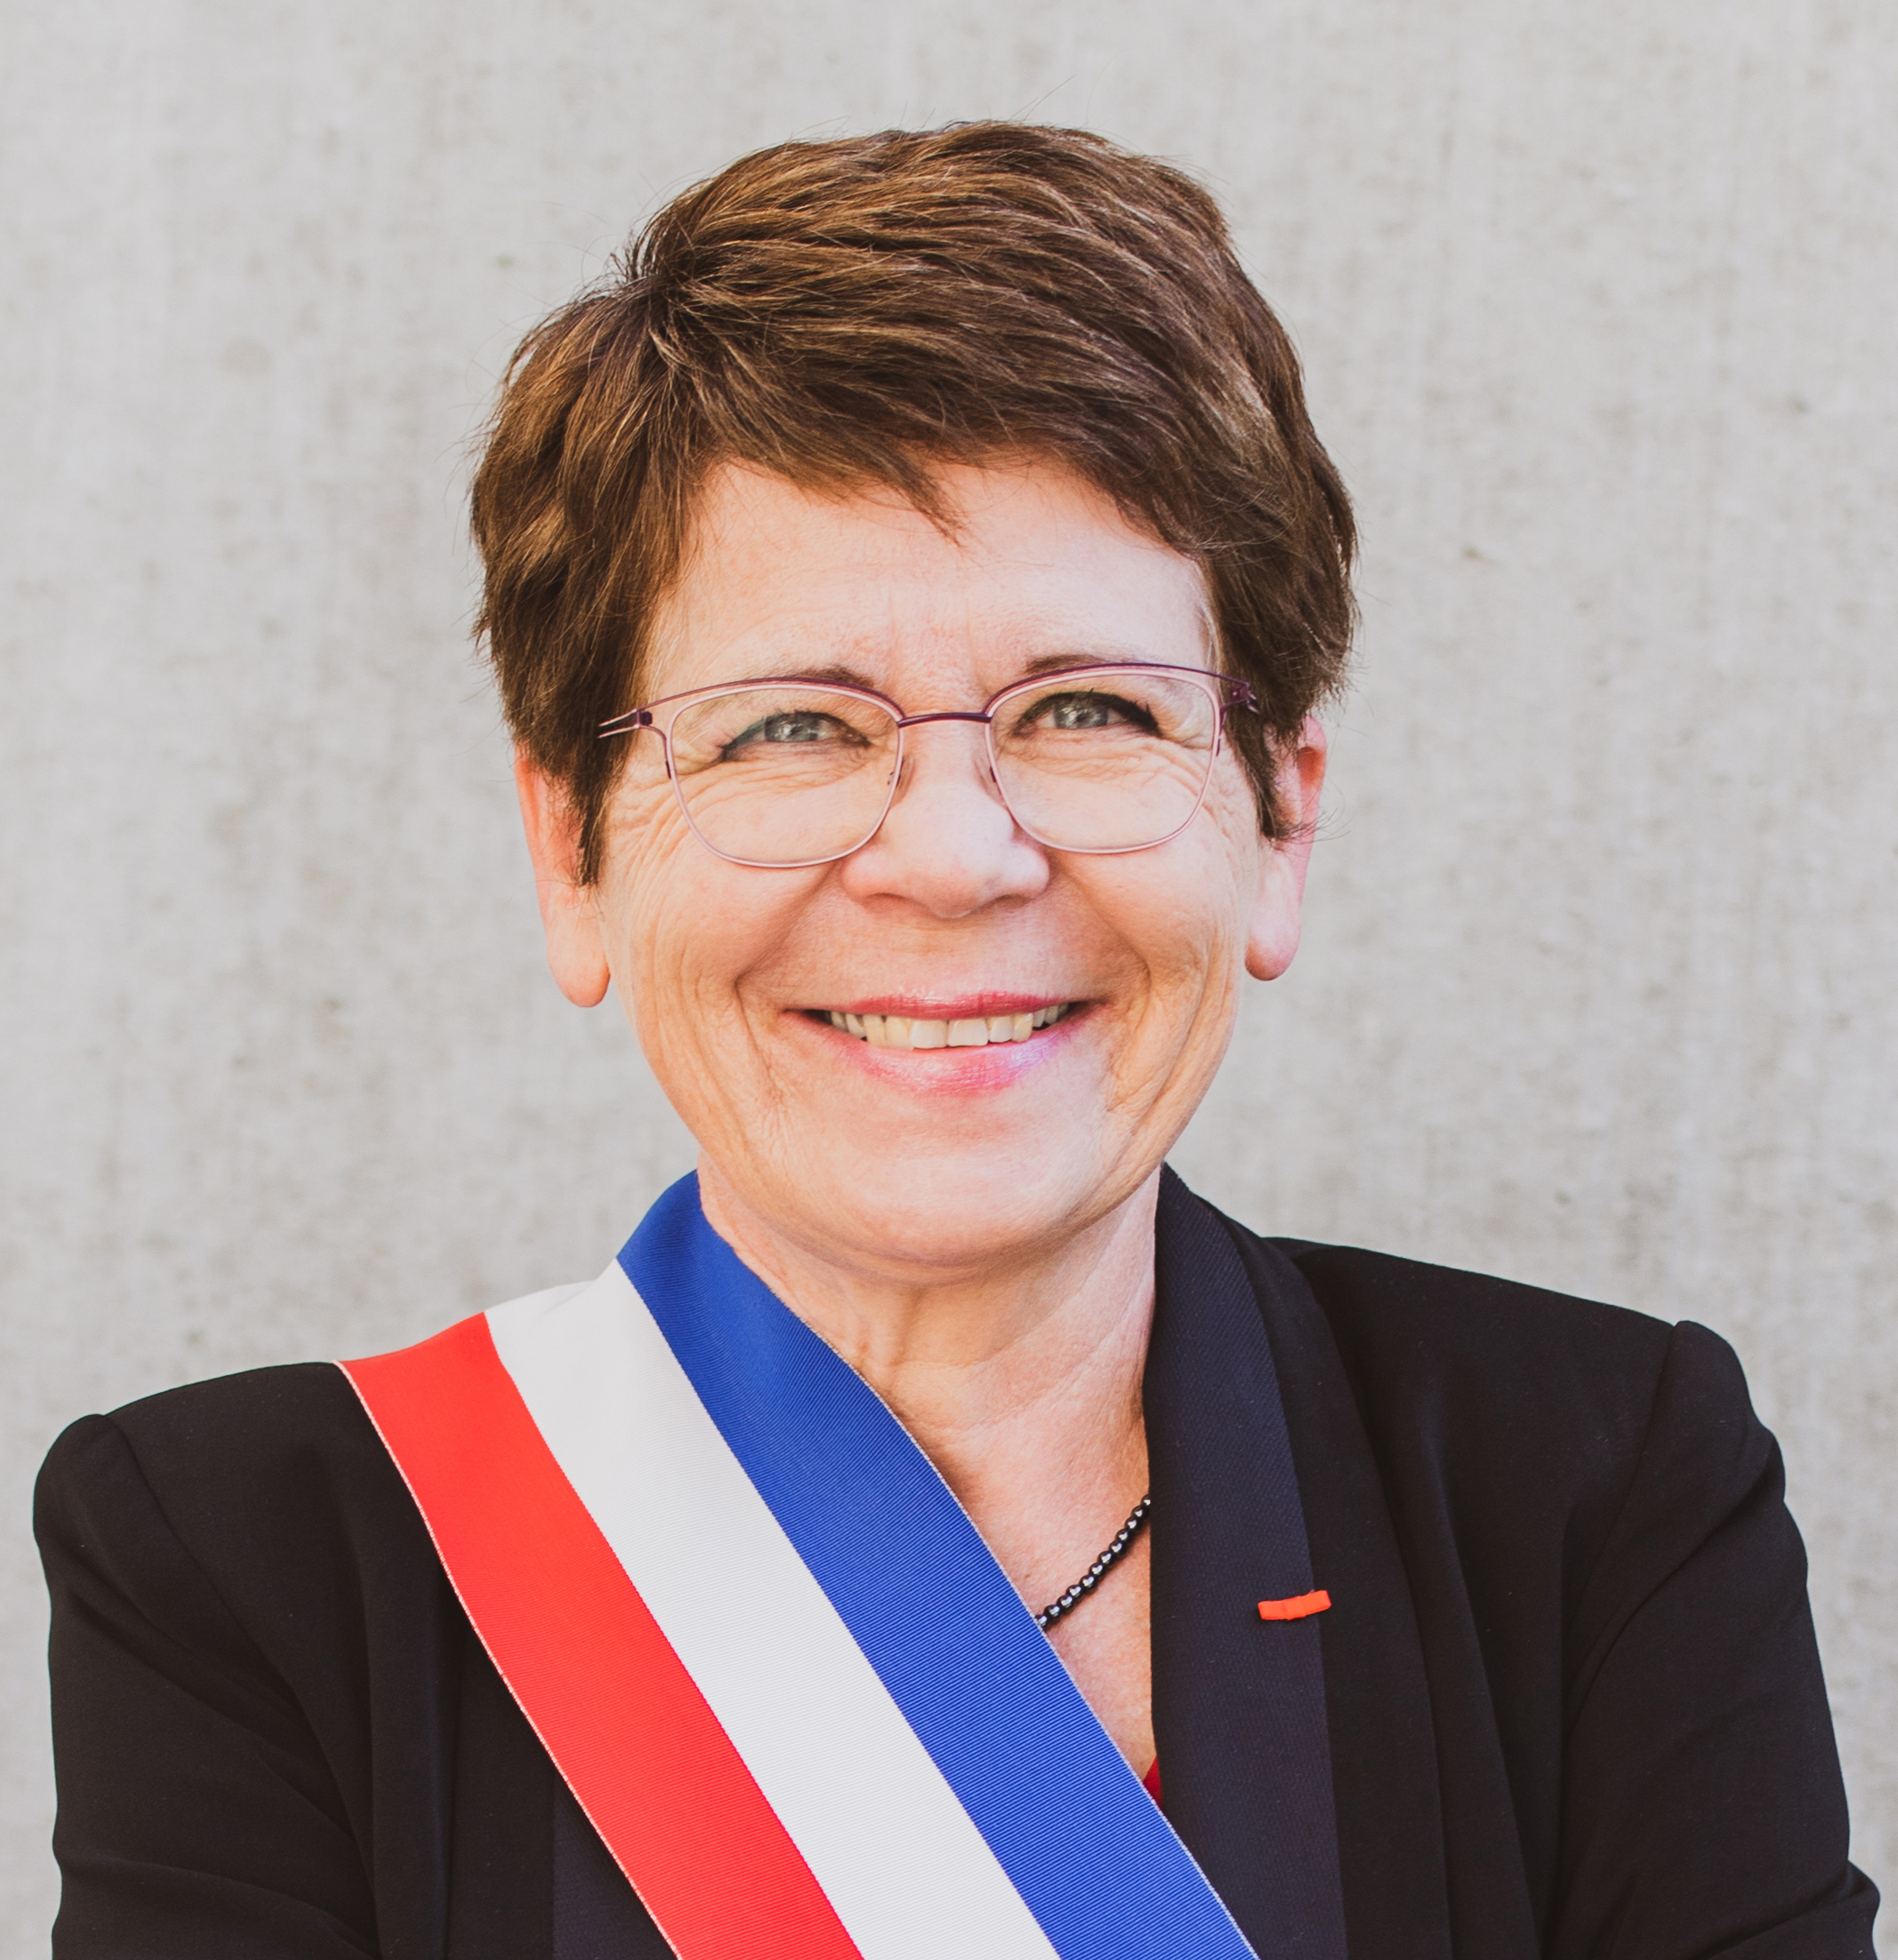 Permanences de Françoise Lecoufle